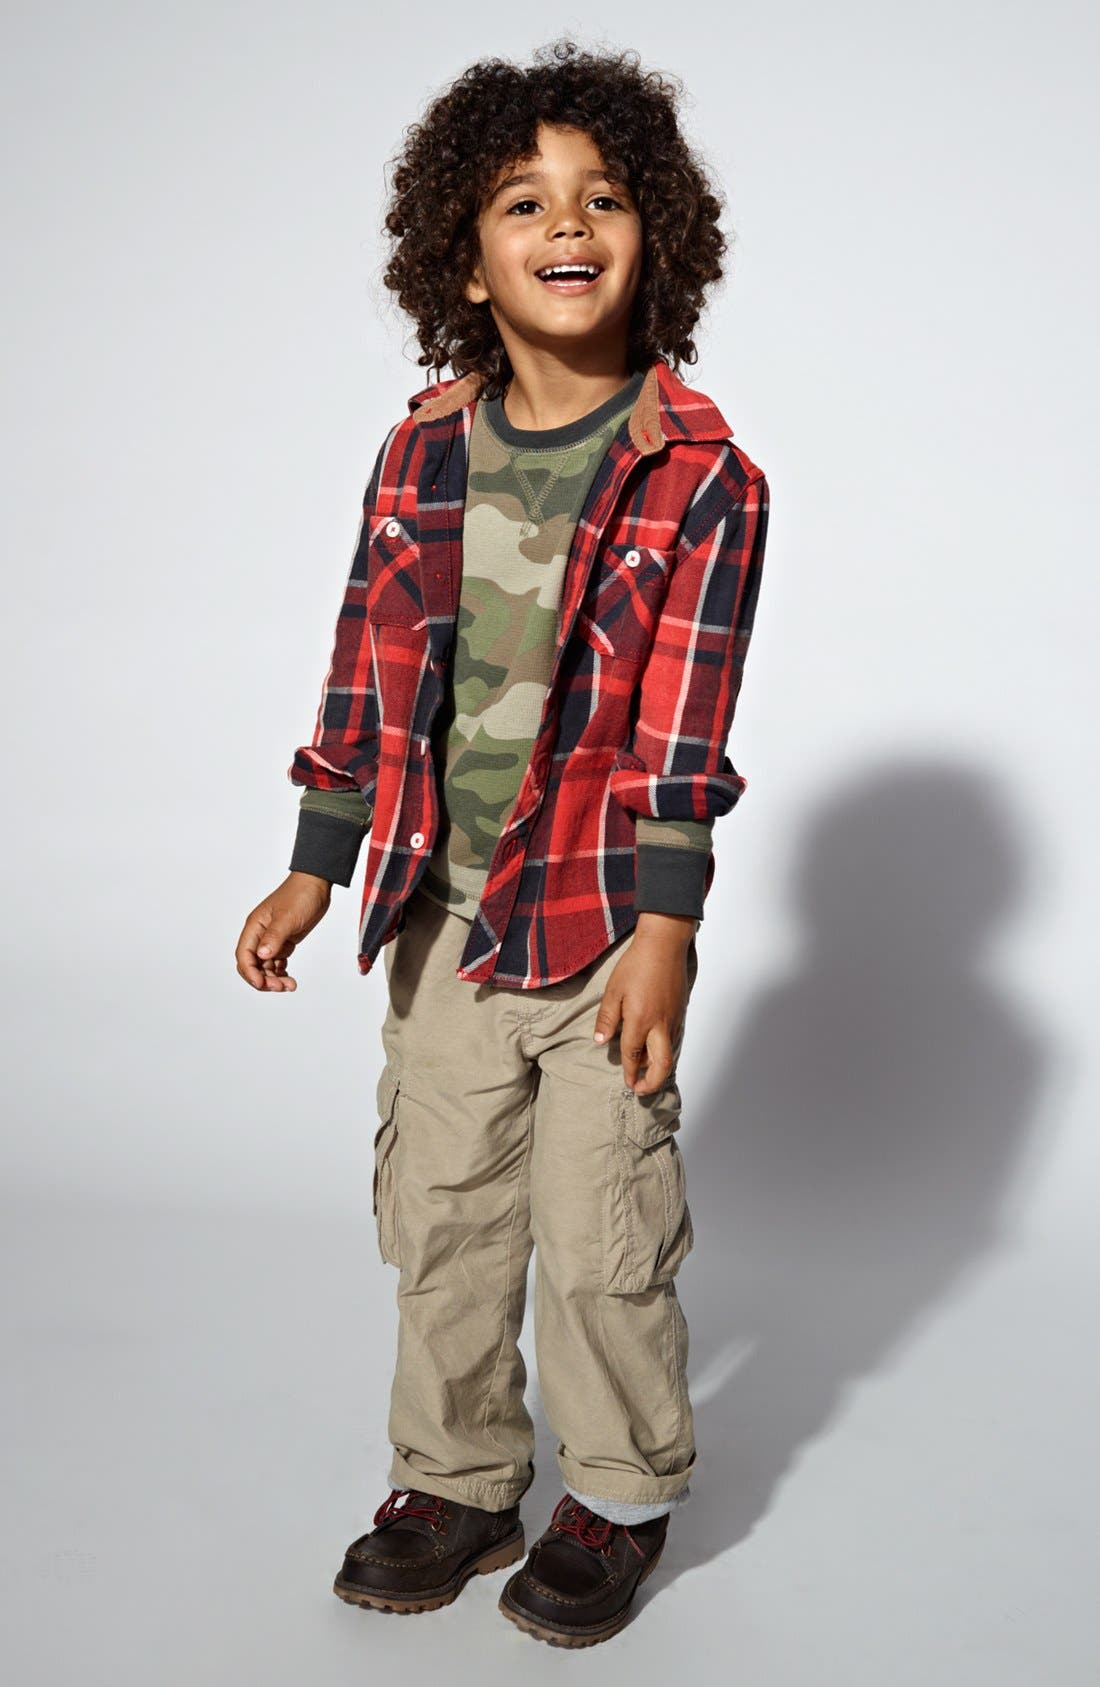 Alternate Image 1 Selected - Tucker + Tate Shirt, T-Shirt & Cargo Pants (Toddler Boys)